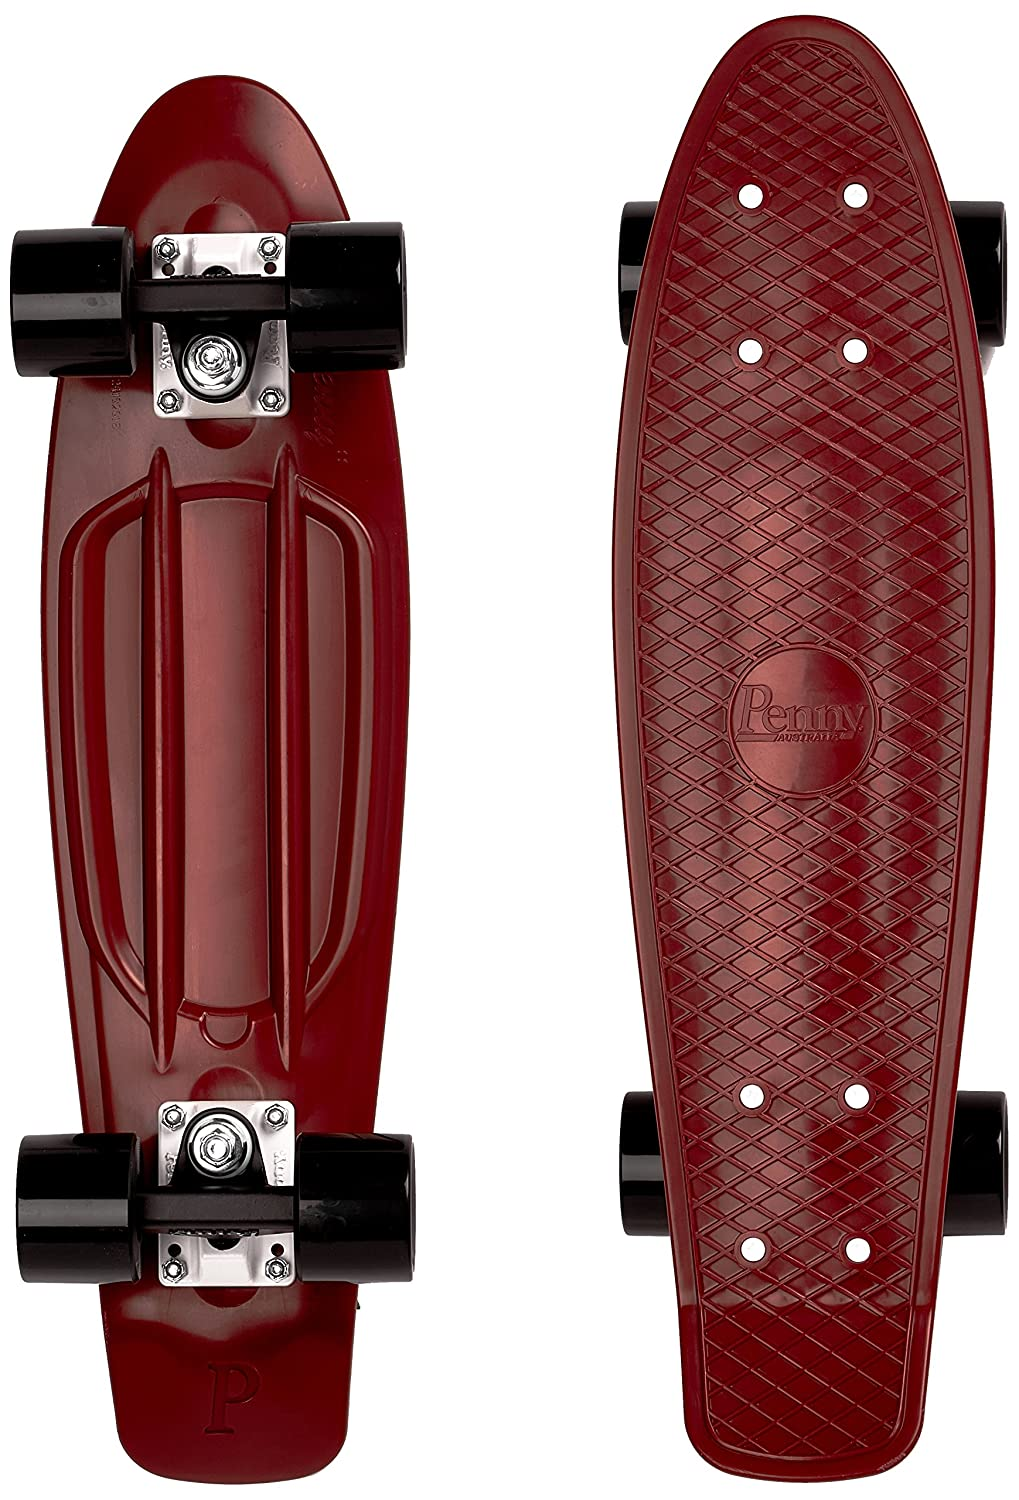 Cruiser Complete Penny Skateboards Classics 22 Burgundy Complete